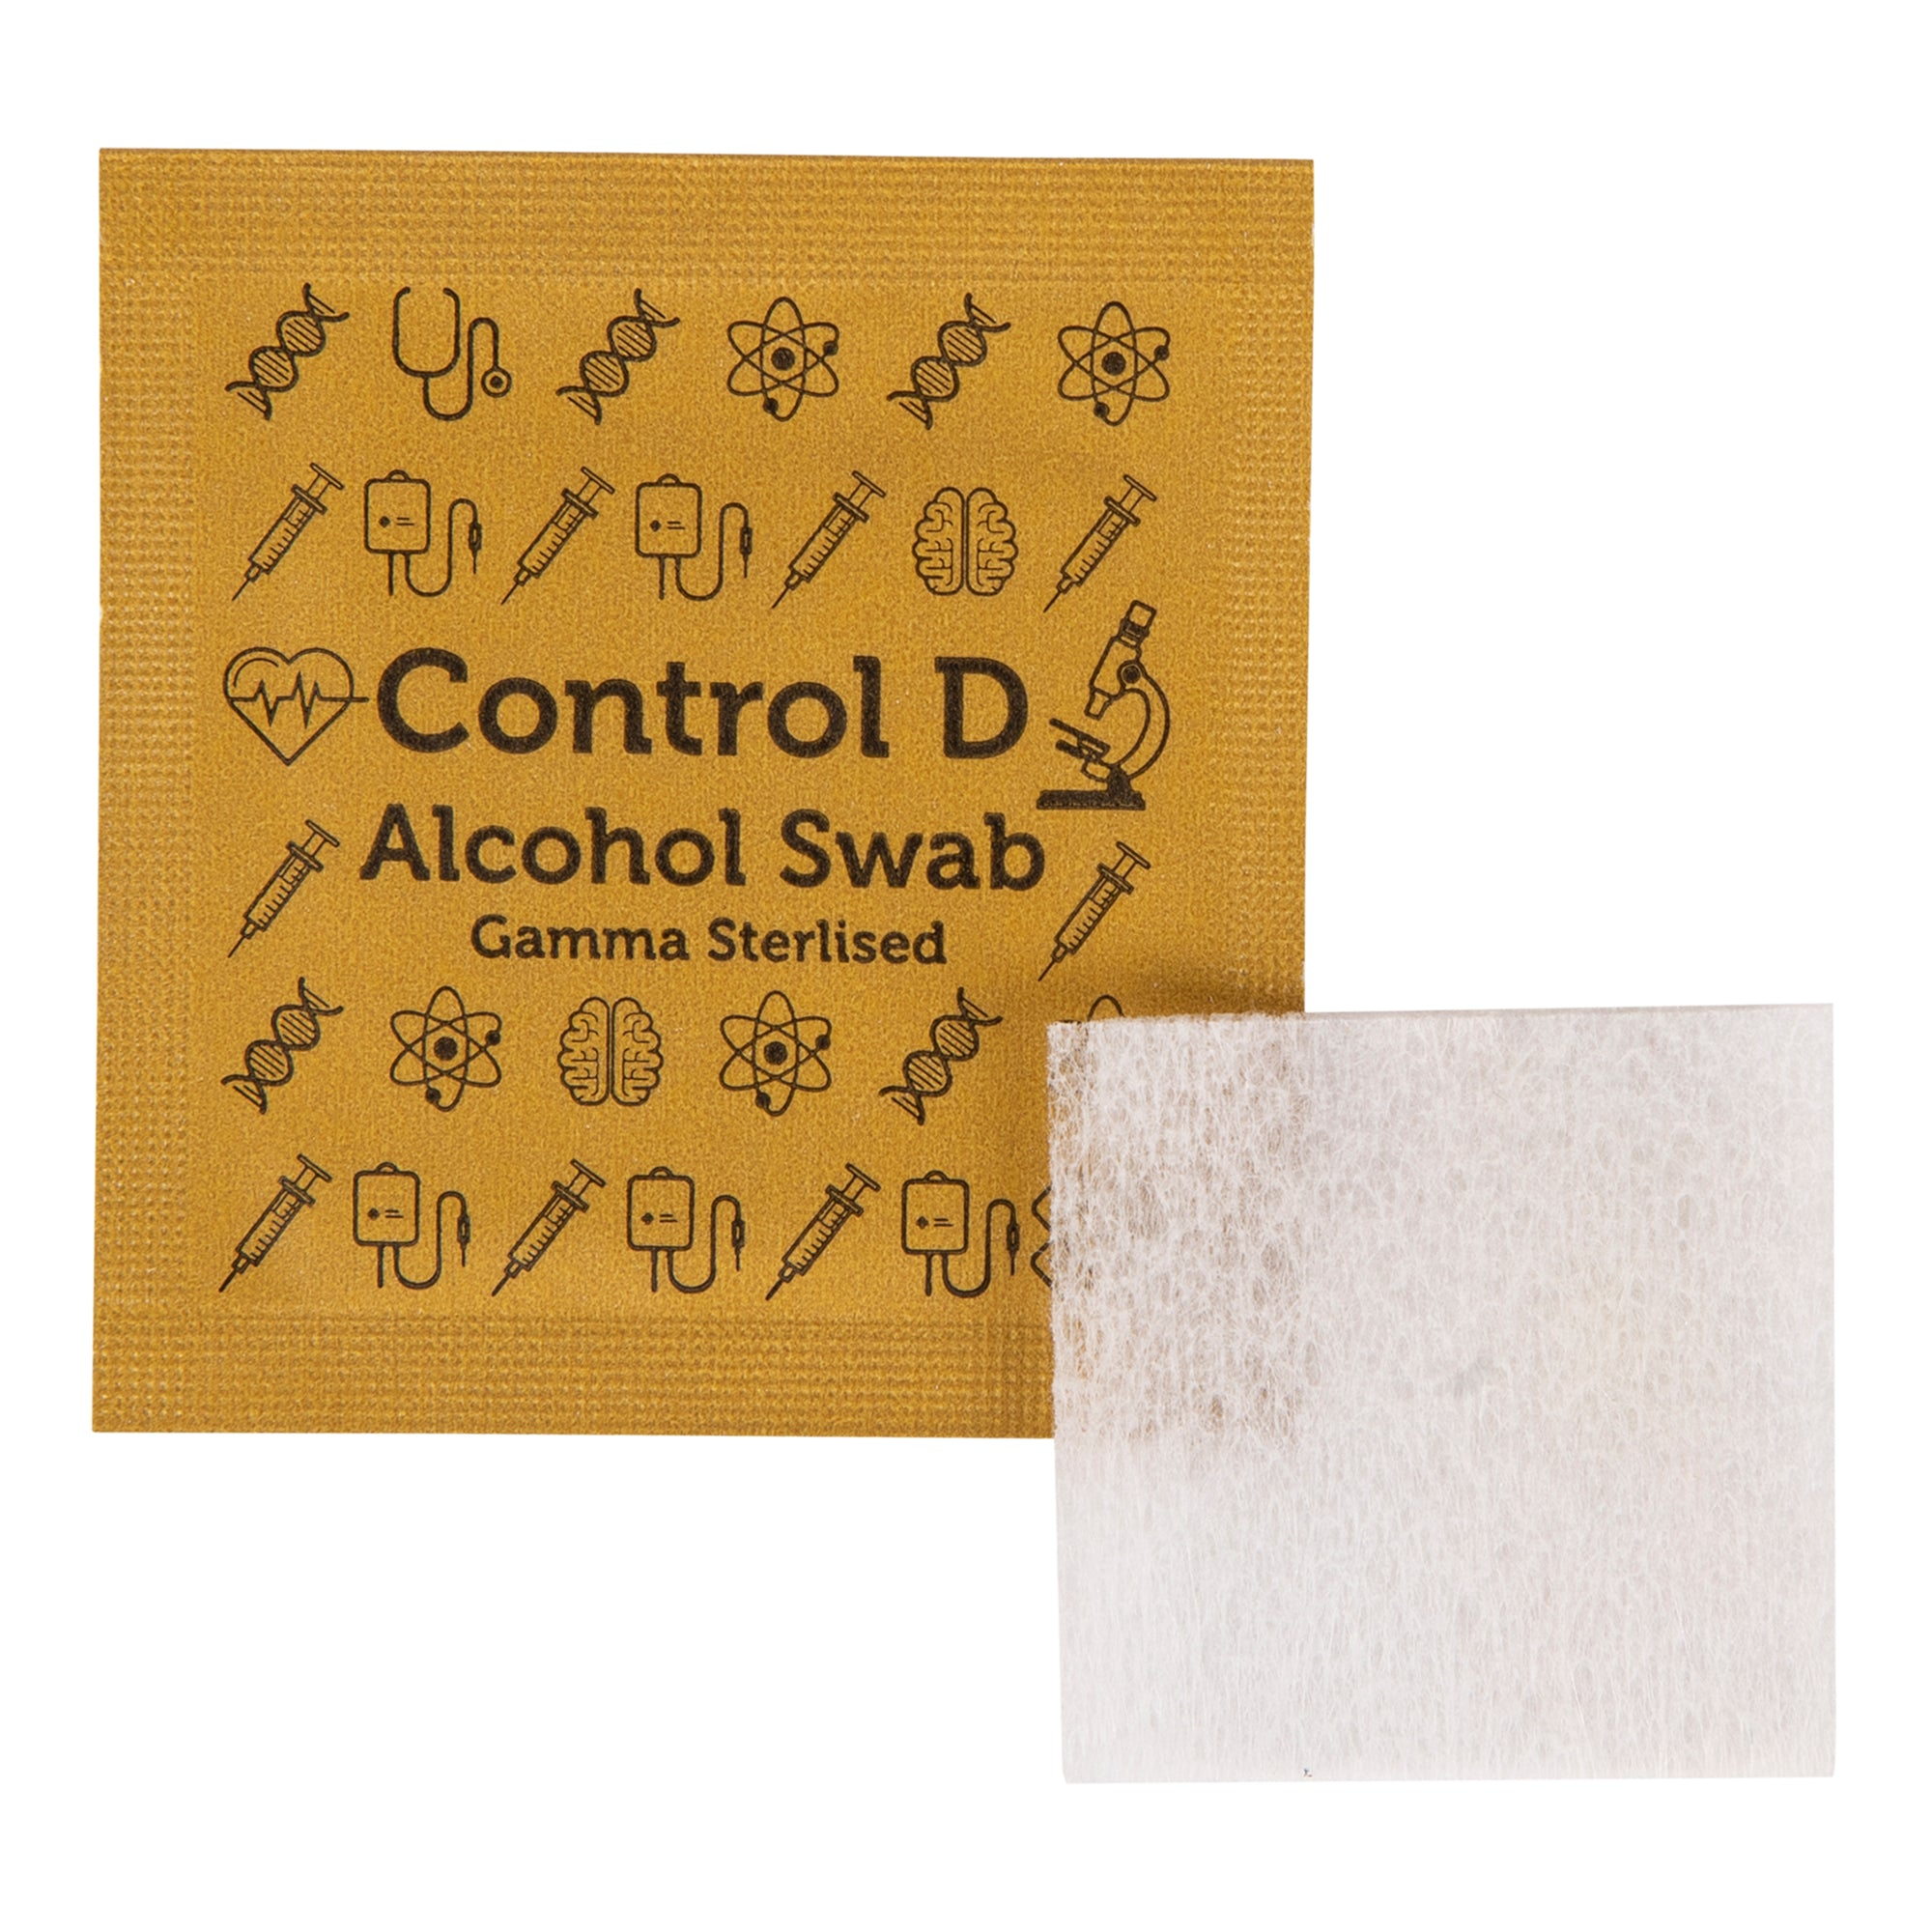 Control D 100 Alcohol Swabs